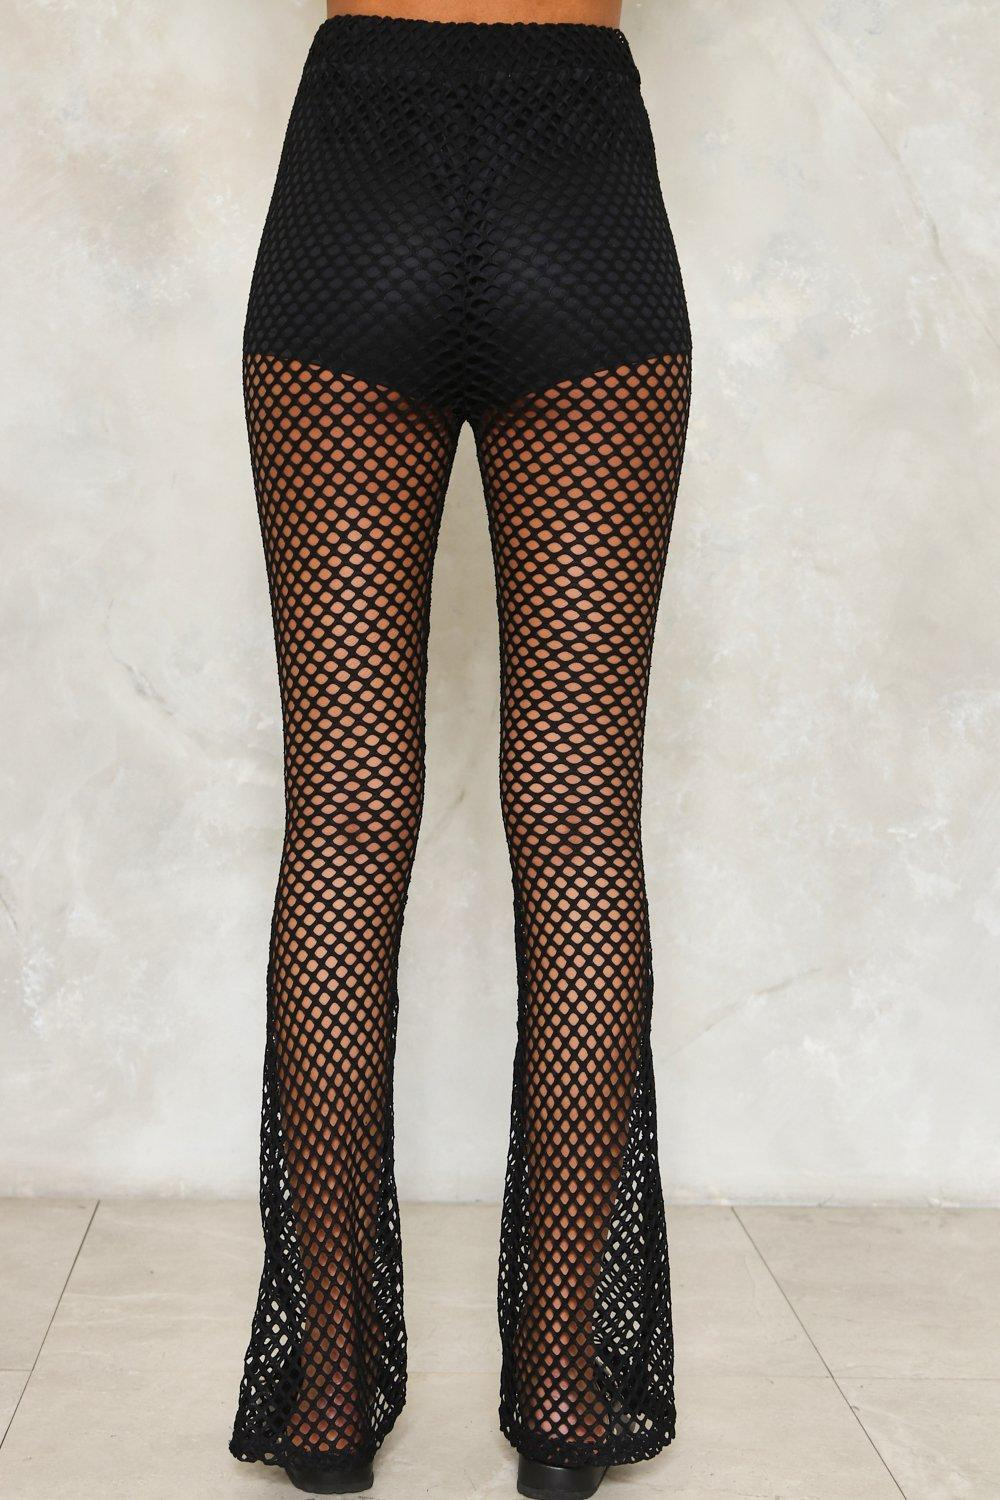 Can You Just Net Fishnet Pants Shop Clothes At Nasty Gal